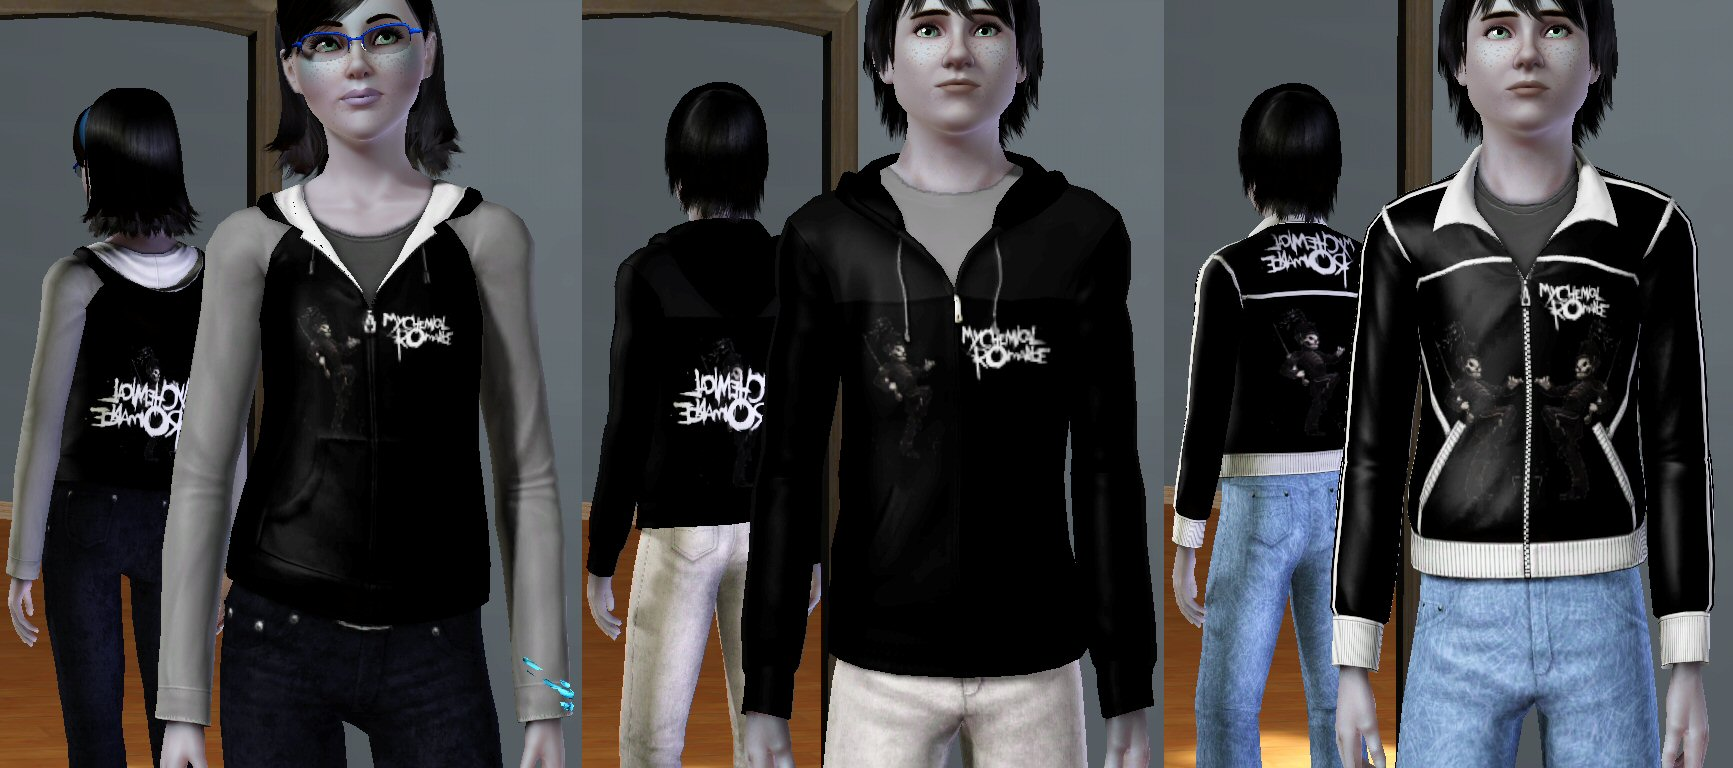 Sims Shirts And 3 Limited Polo Engineering – Consulting Edge zpSLMGqUV